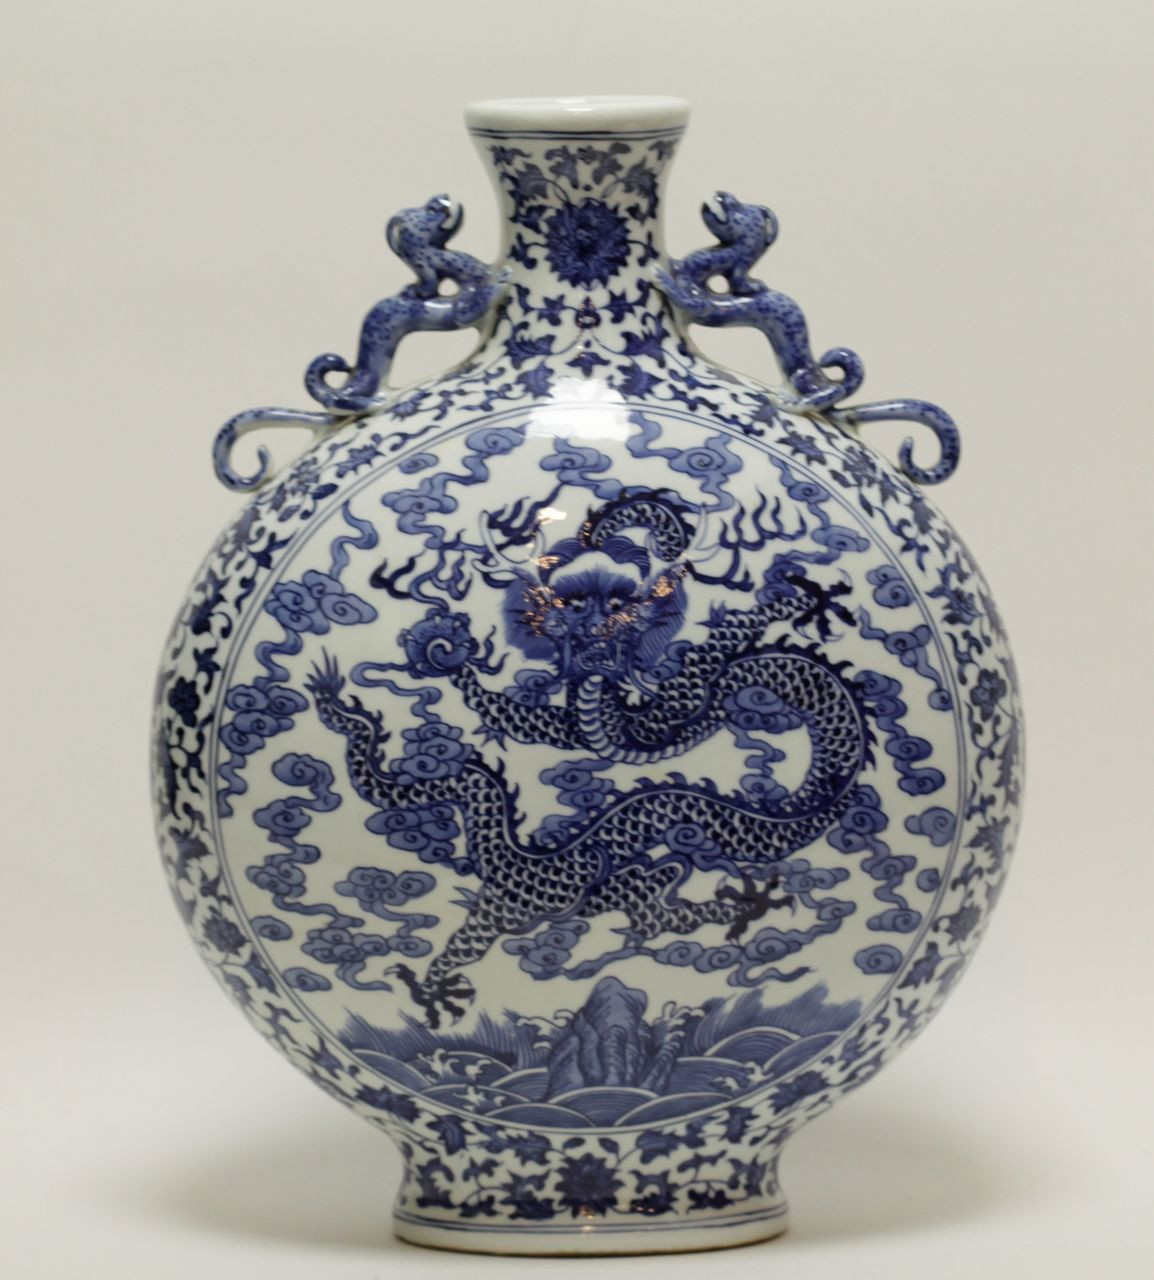 chinese pottery vase of lot 337 s60 chinese blue white porcelain vase est 2000 3000 inside lot 337 s60 chinese blue white porcelain vase est 2000 3000 antique reader